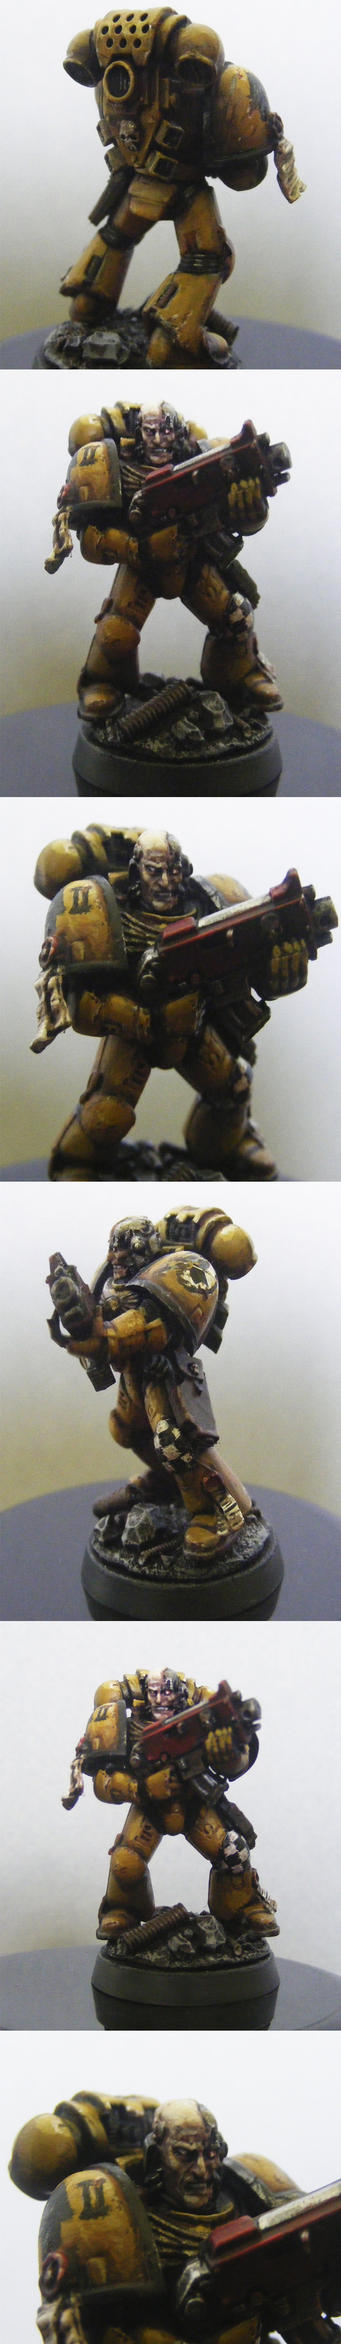 Imperial Fist (miniature) by FonteArt